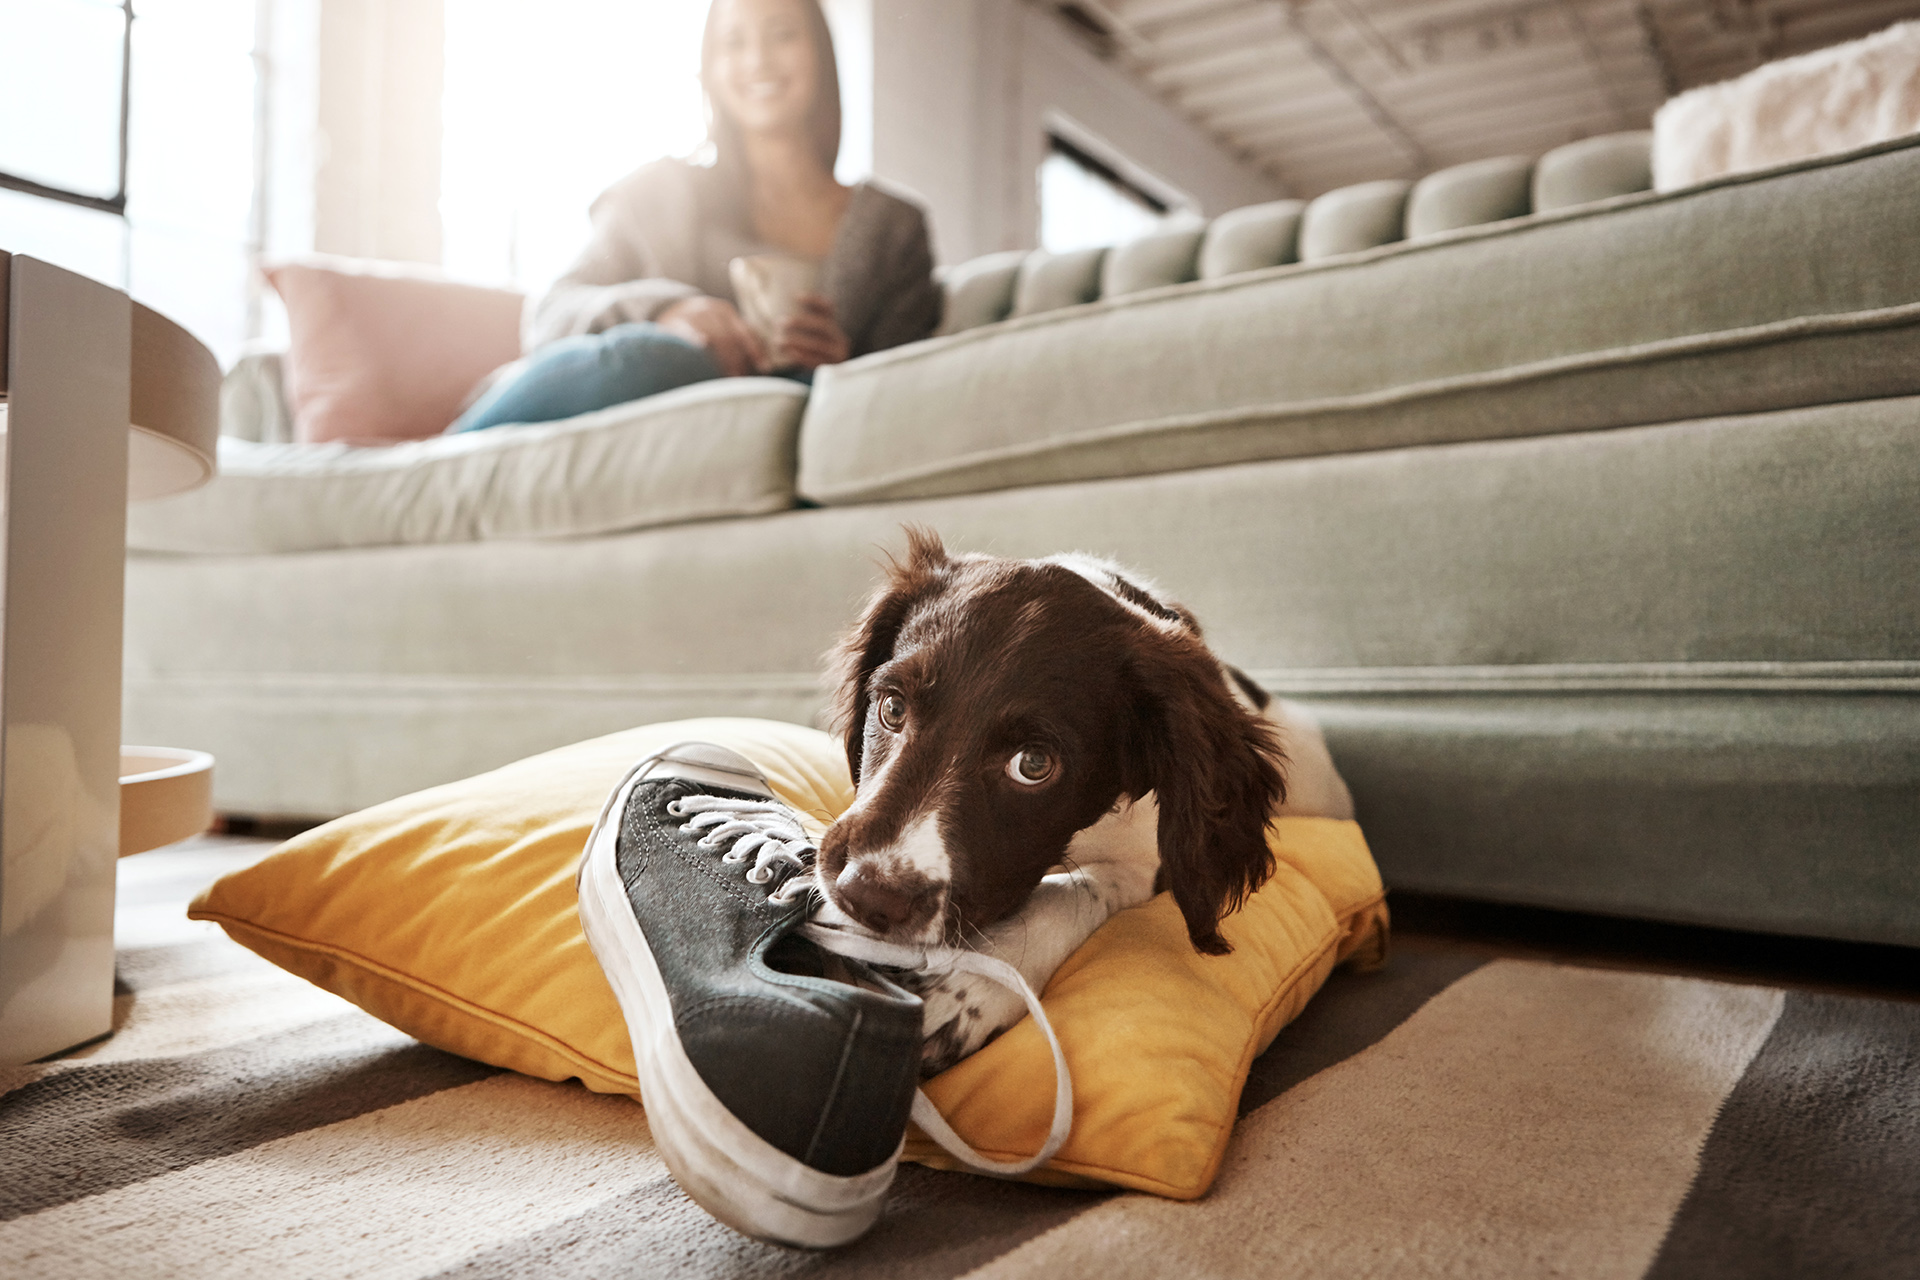 puppy chewing shoe on pillow in front of couch